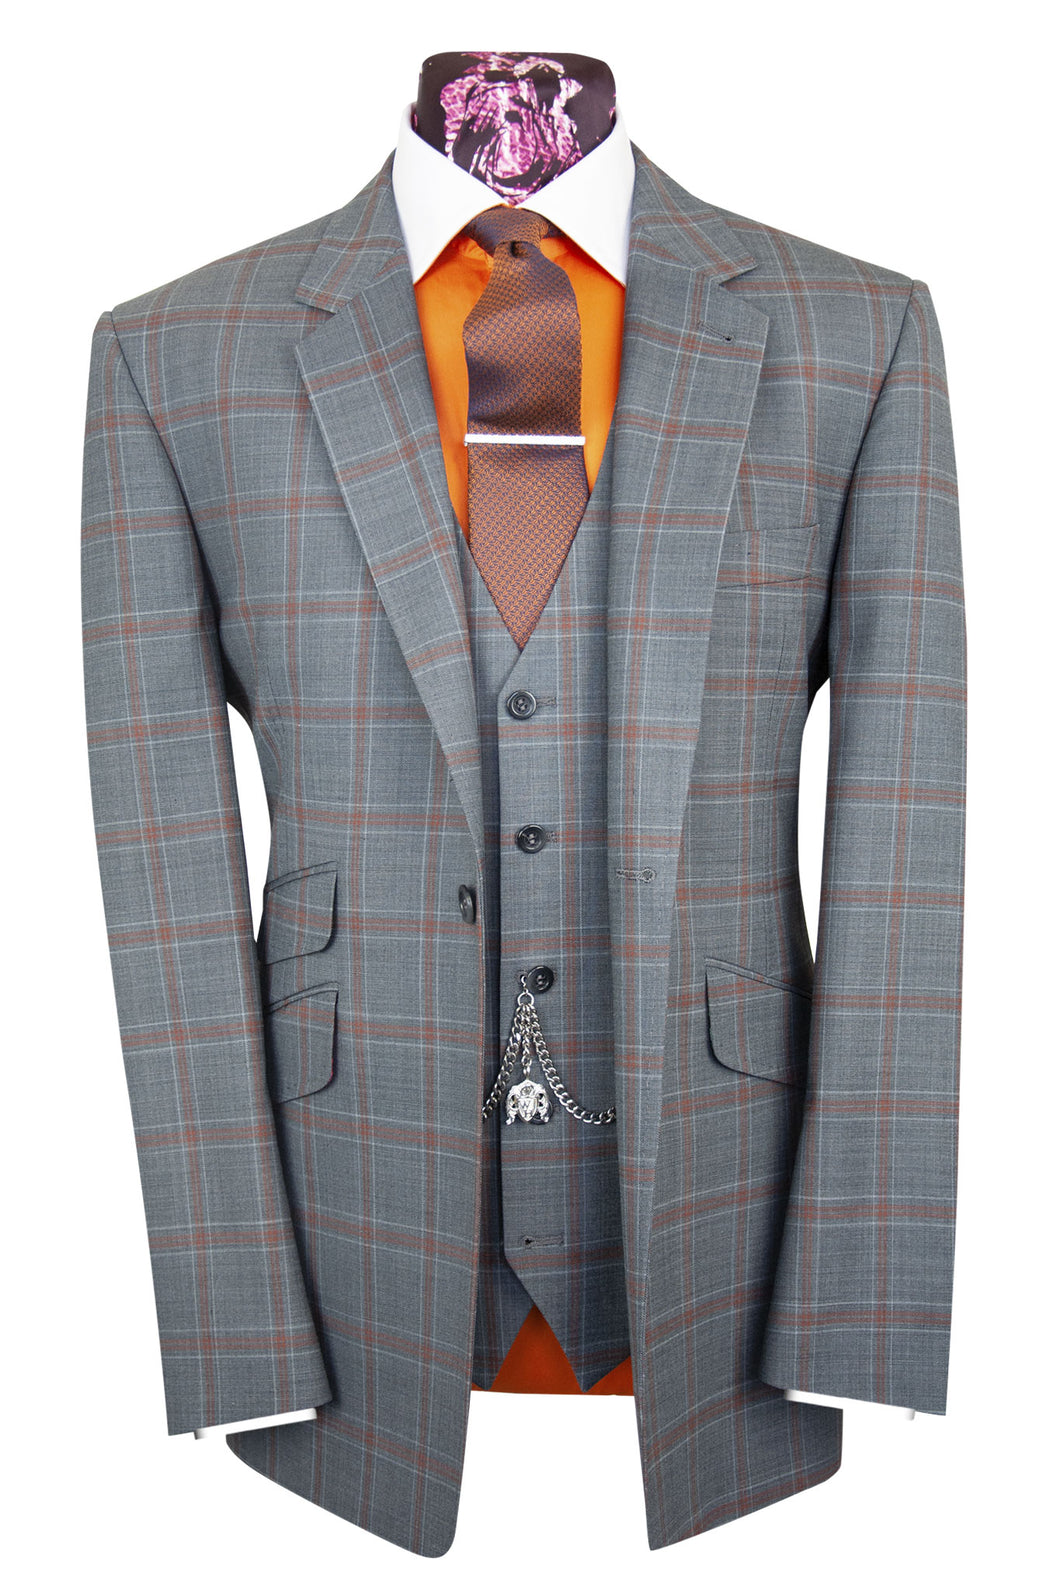 The Hunter Stone Grey Suit with Orange Over Check